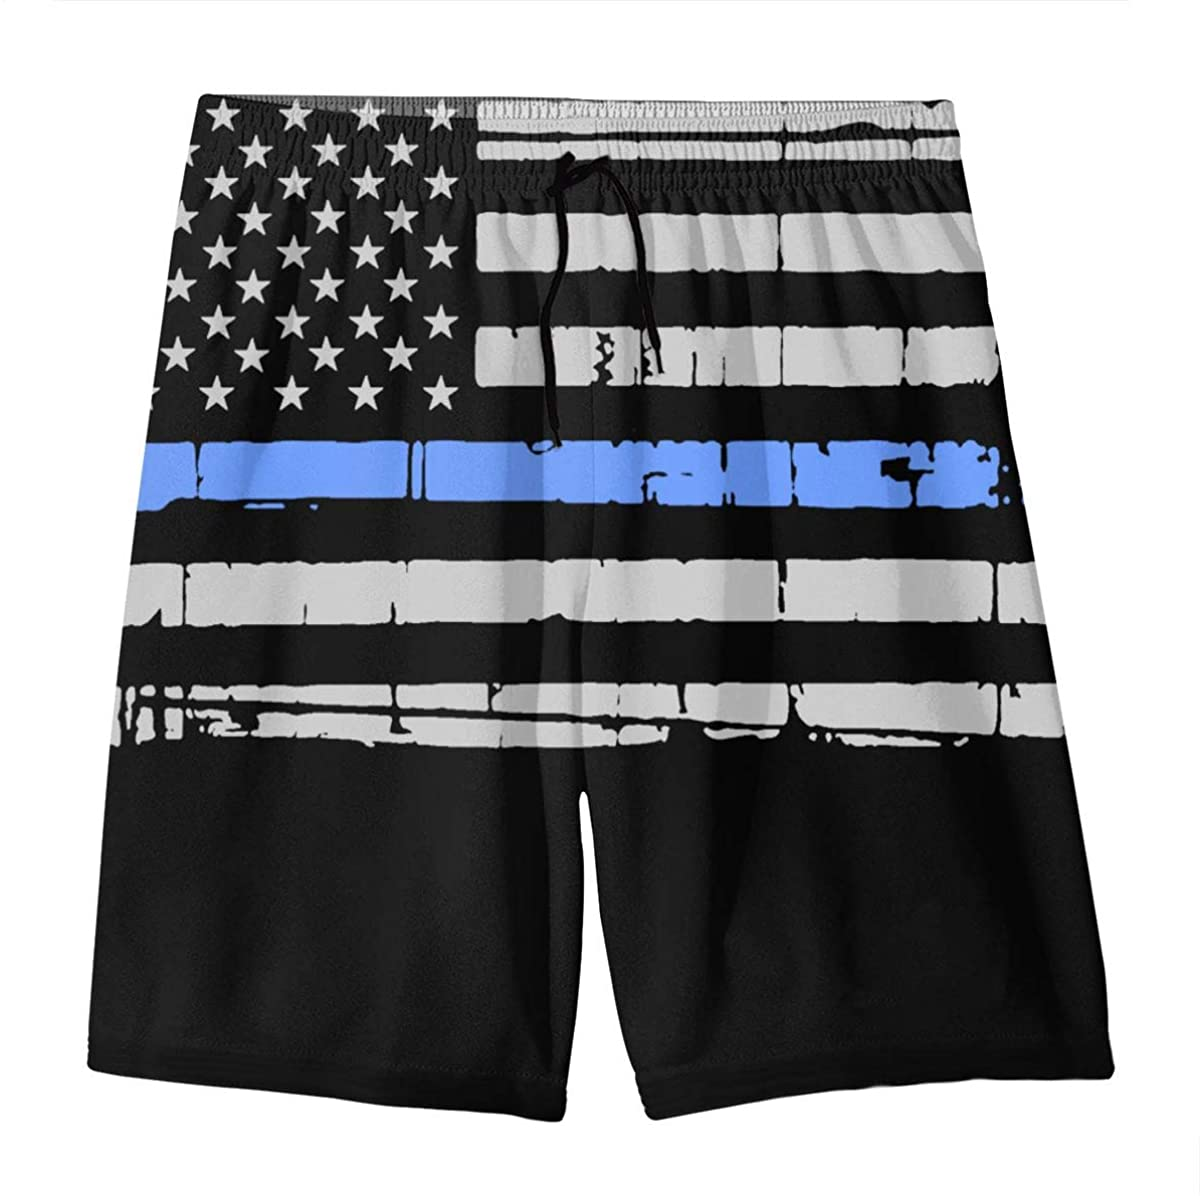 YOIGNG Blue Thin Line Teens Swim Trunks Beach Shorts Surfing Board Quick Dry Bathing Suit